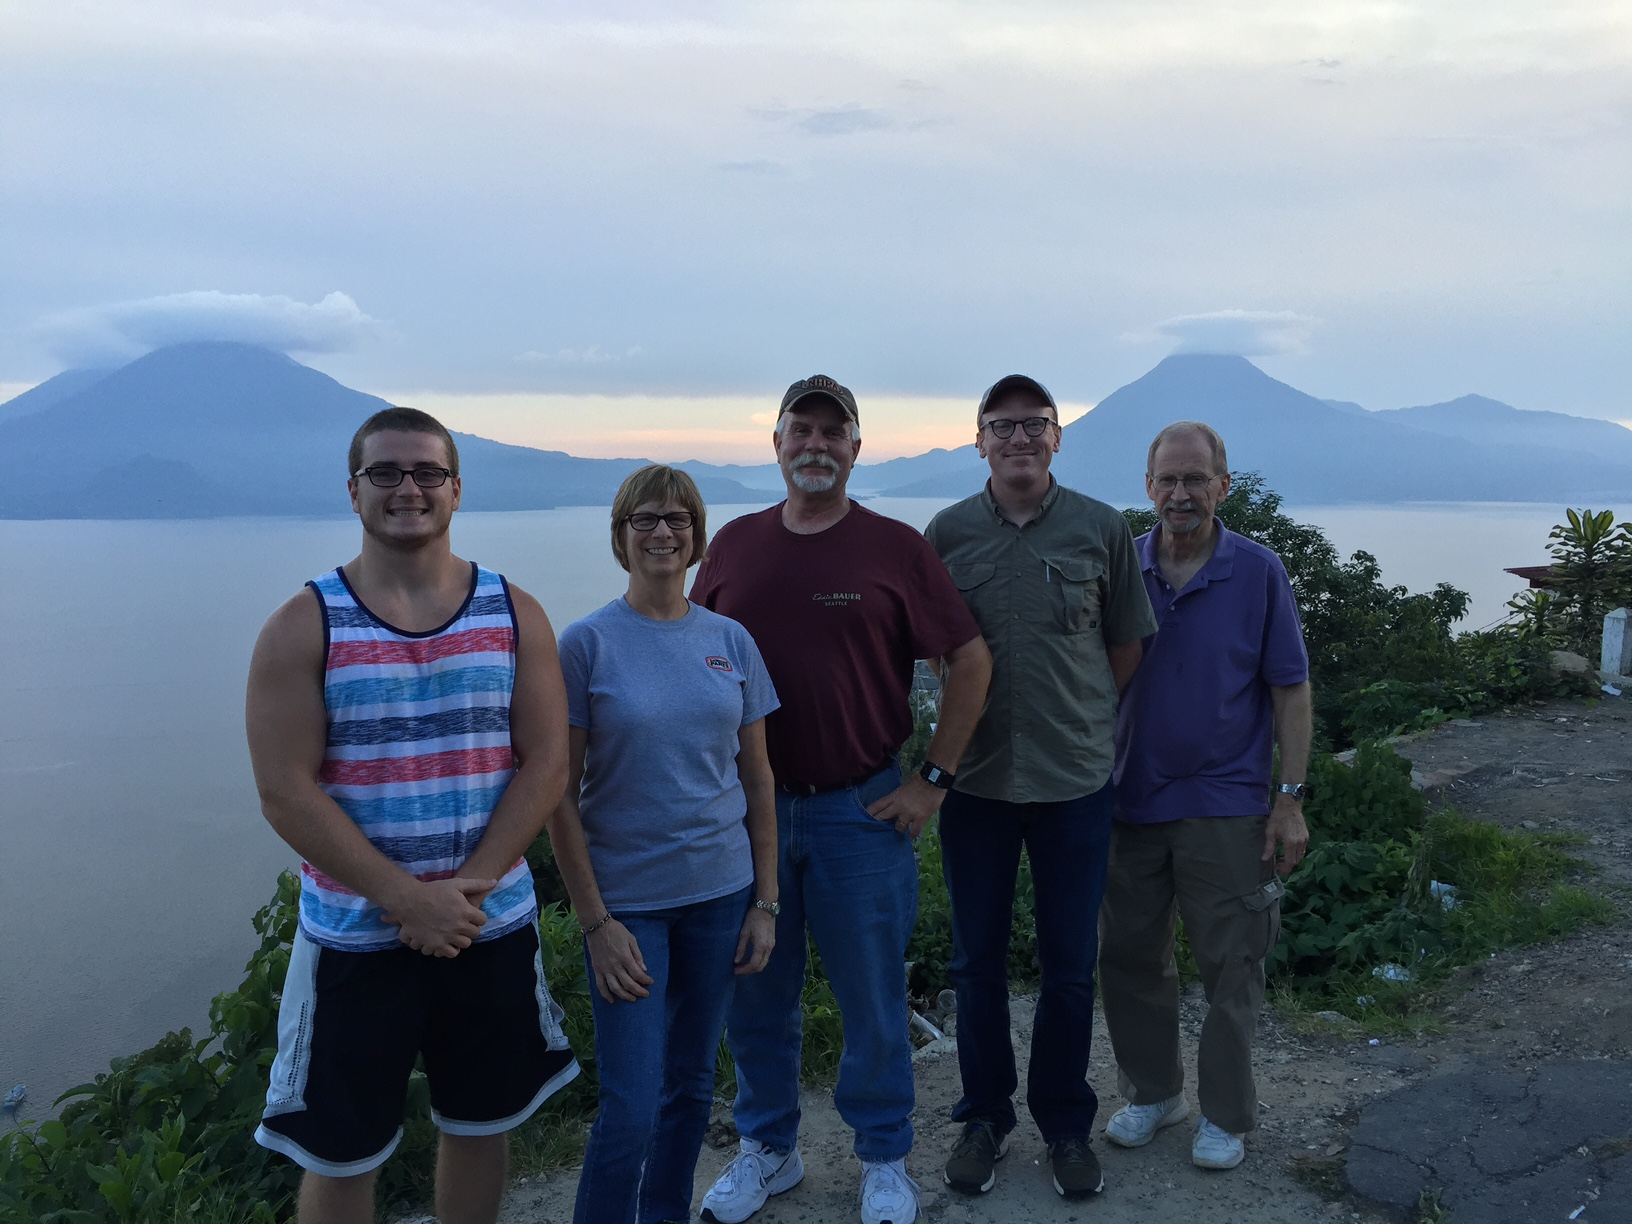 Guatemala Mission Team on a mountain